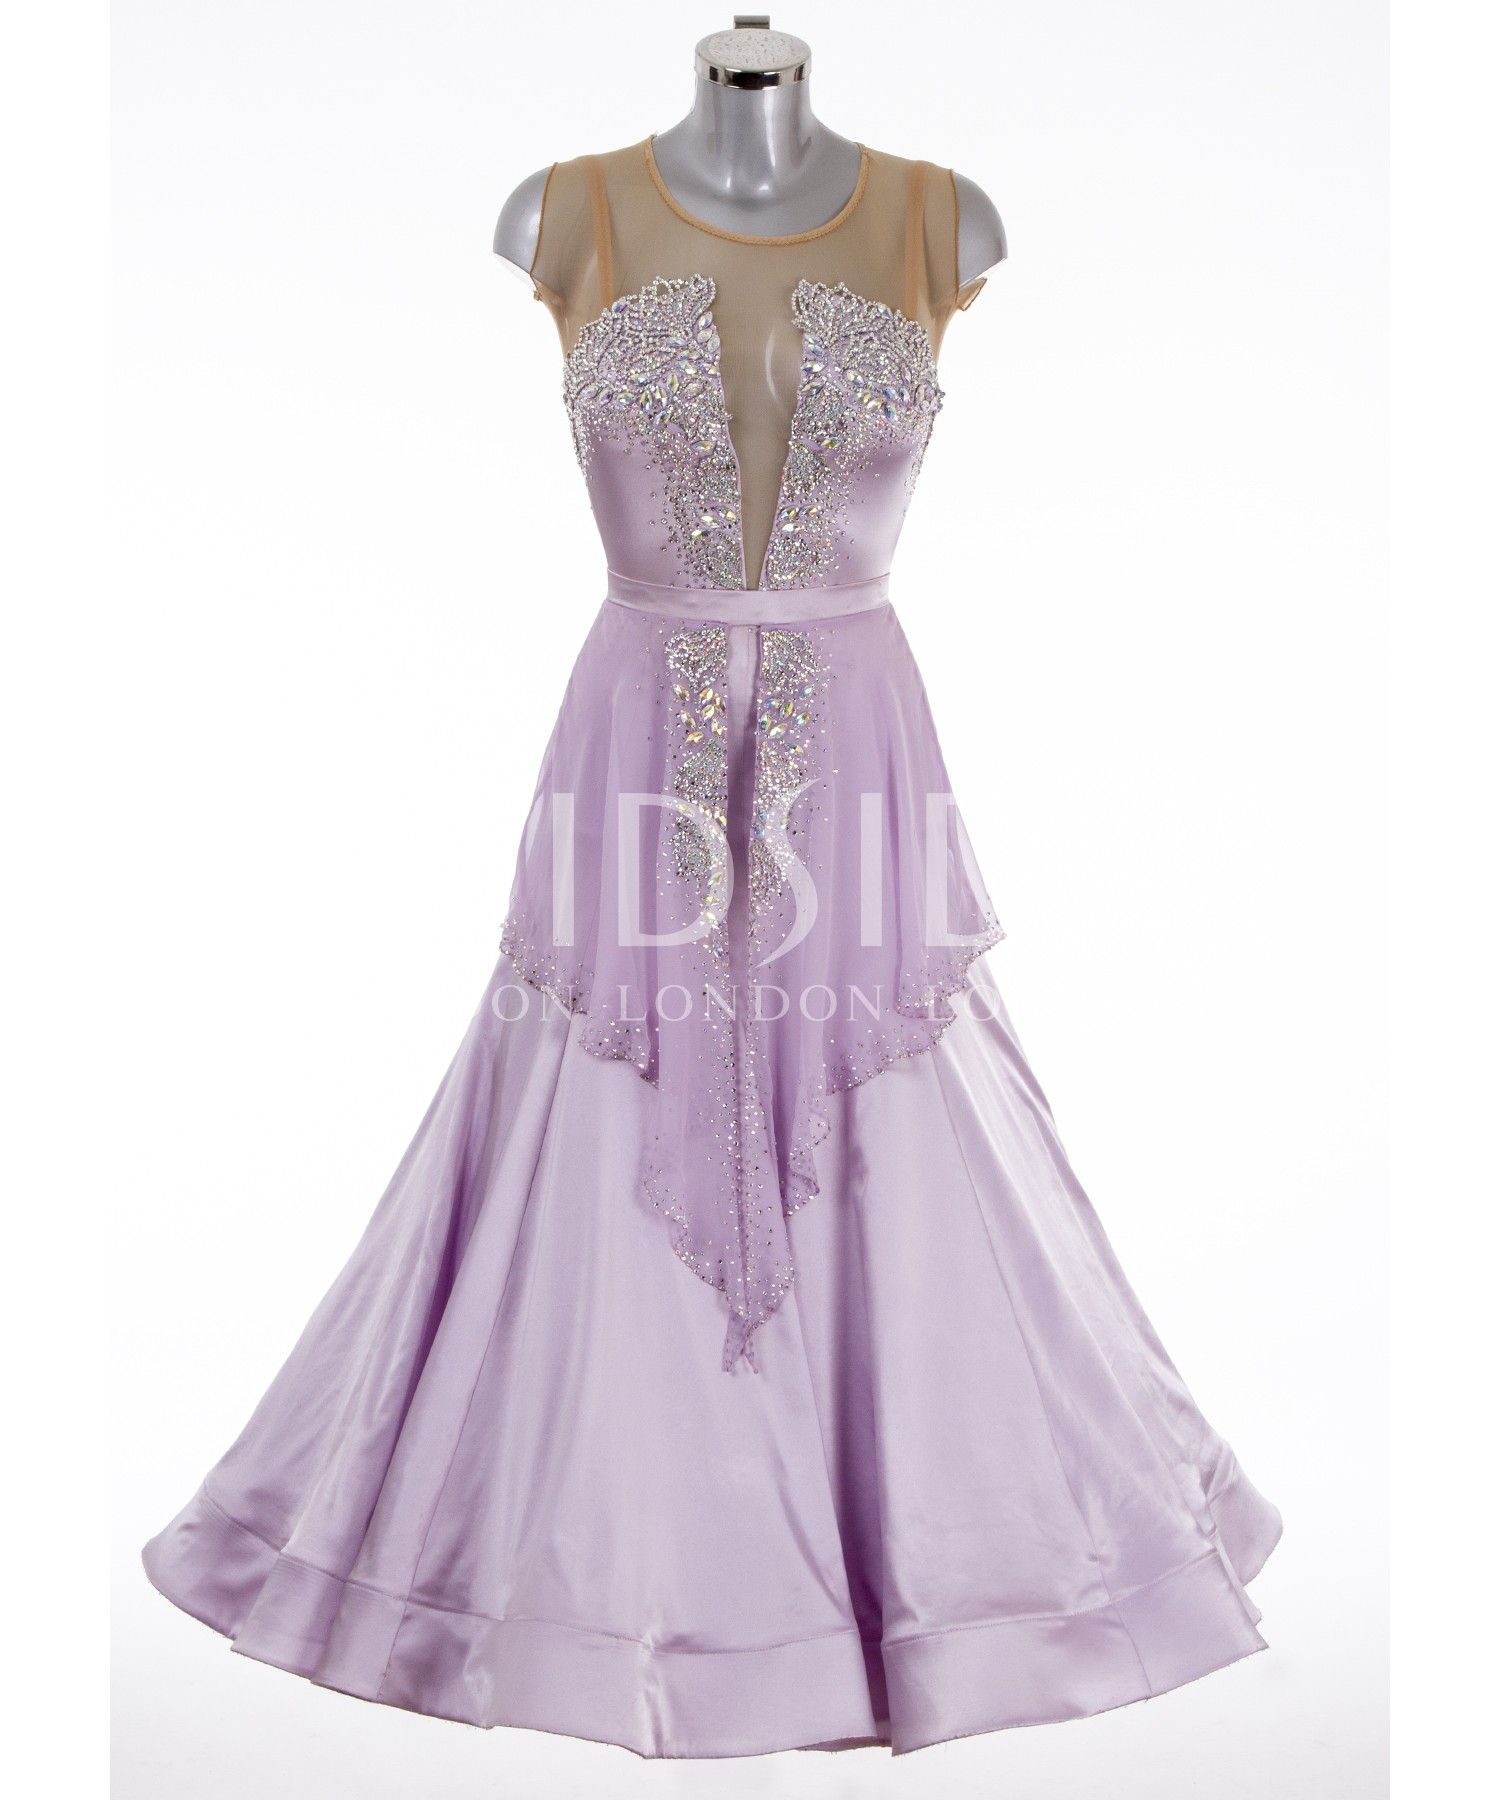 386958 Lilac Ballroom Dress | Ballroom dresses for sale | Dance ...